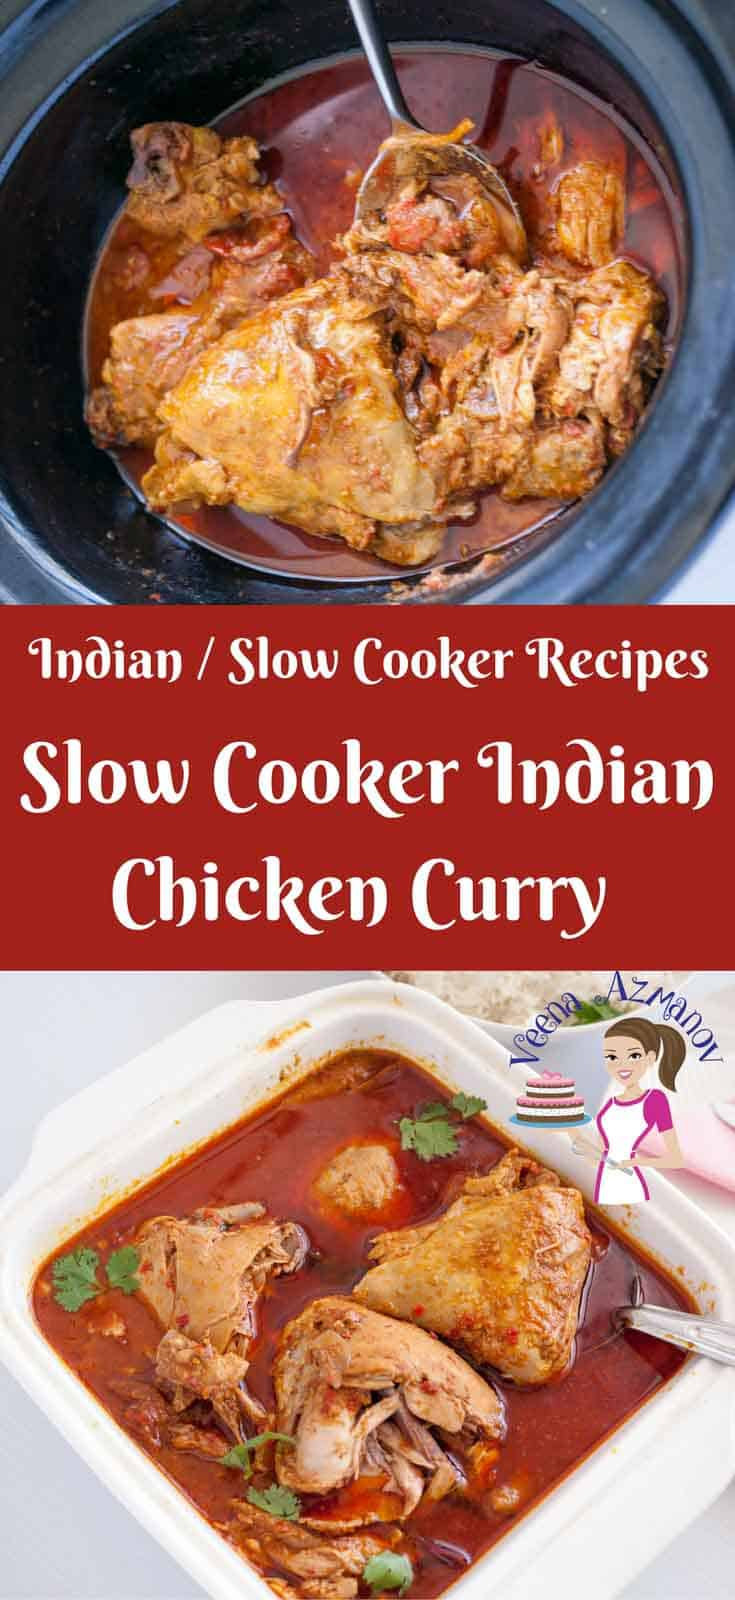 Slow cooker indian chicken curry recipe crock pot recipes this slow cooker indian chicken curry recipe aka crock pot chicken curry is a simple forumfinder Images